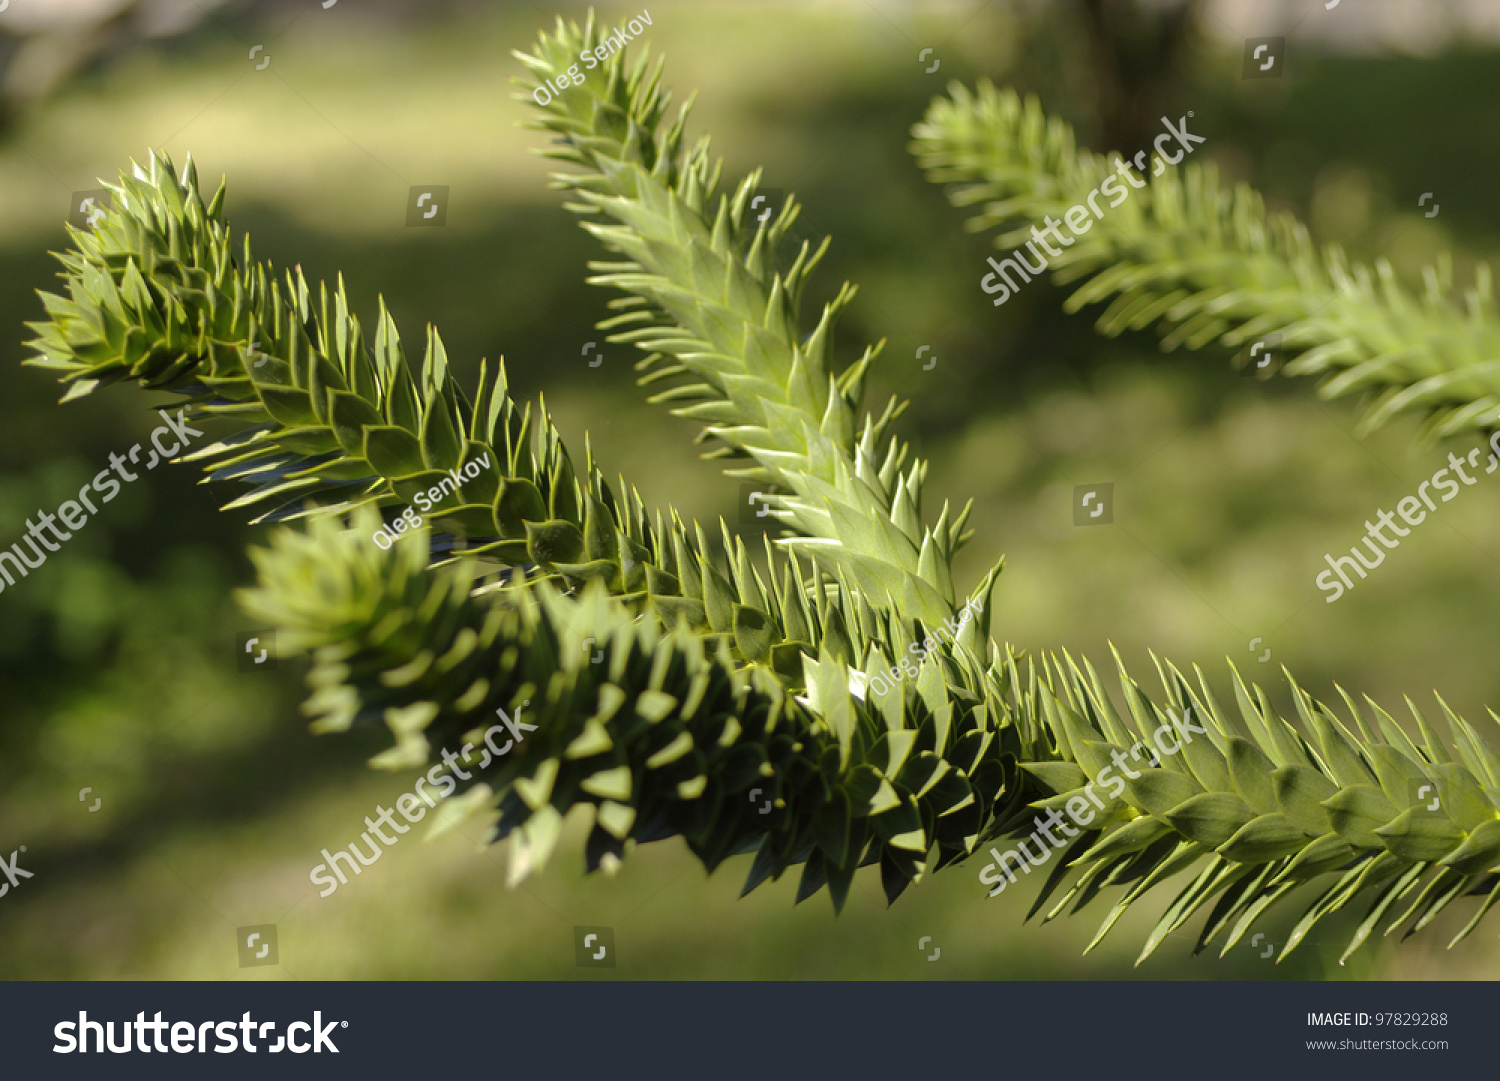 how to grow an evergreen tree from a branch